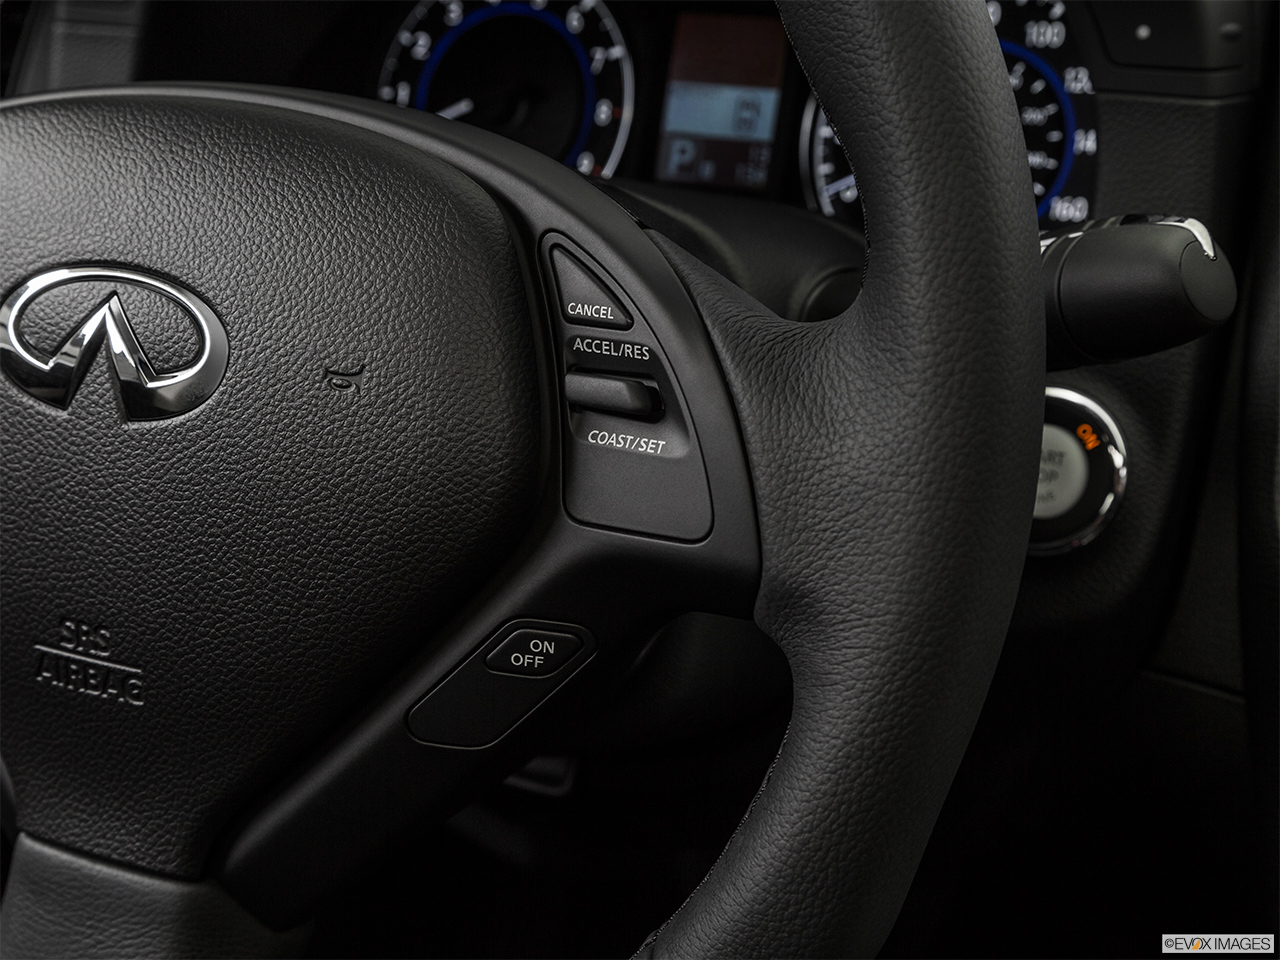 2015 Infiniti Q40 Base Steering Wheel Controls (Right Side)